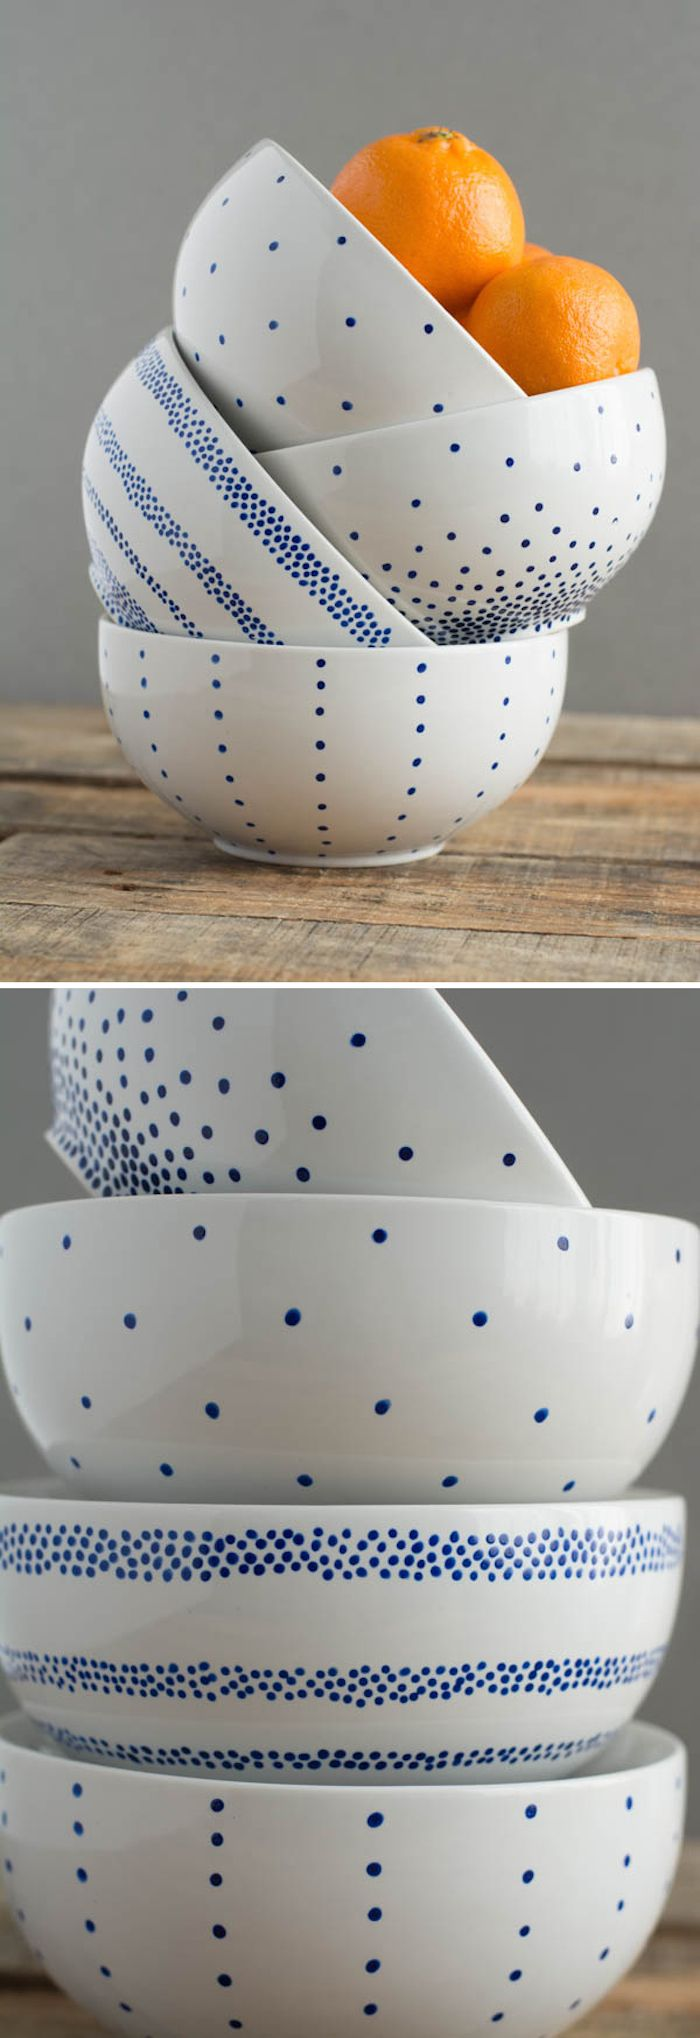 DIY buy white dishes from dollar store and decorate a whole dish set w/ porcelain 150 pen - bake for 30 min